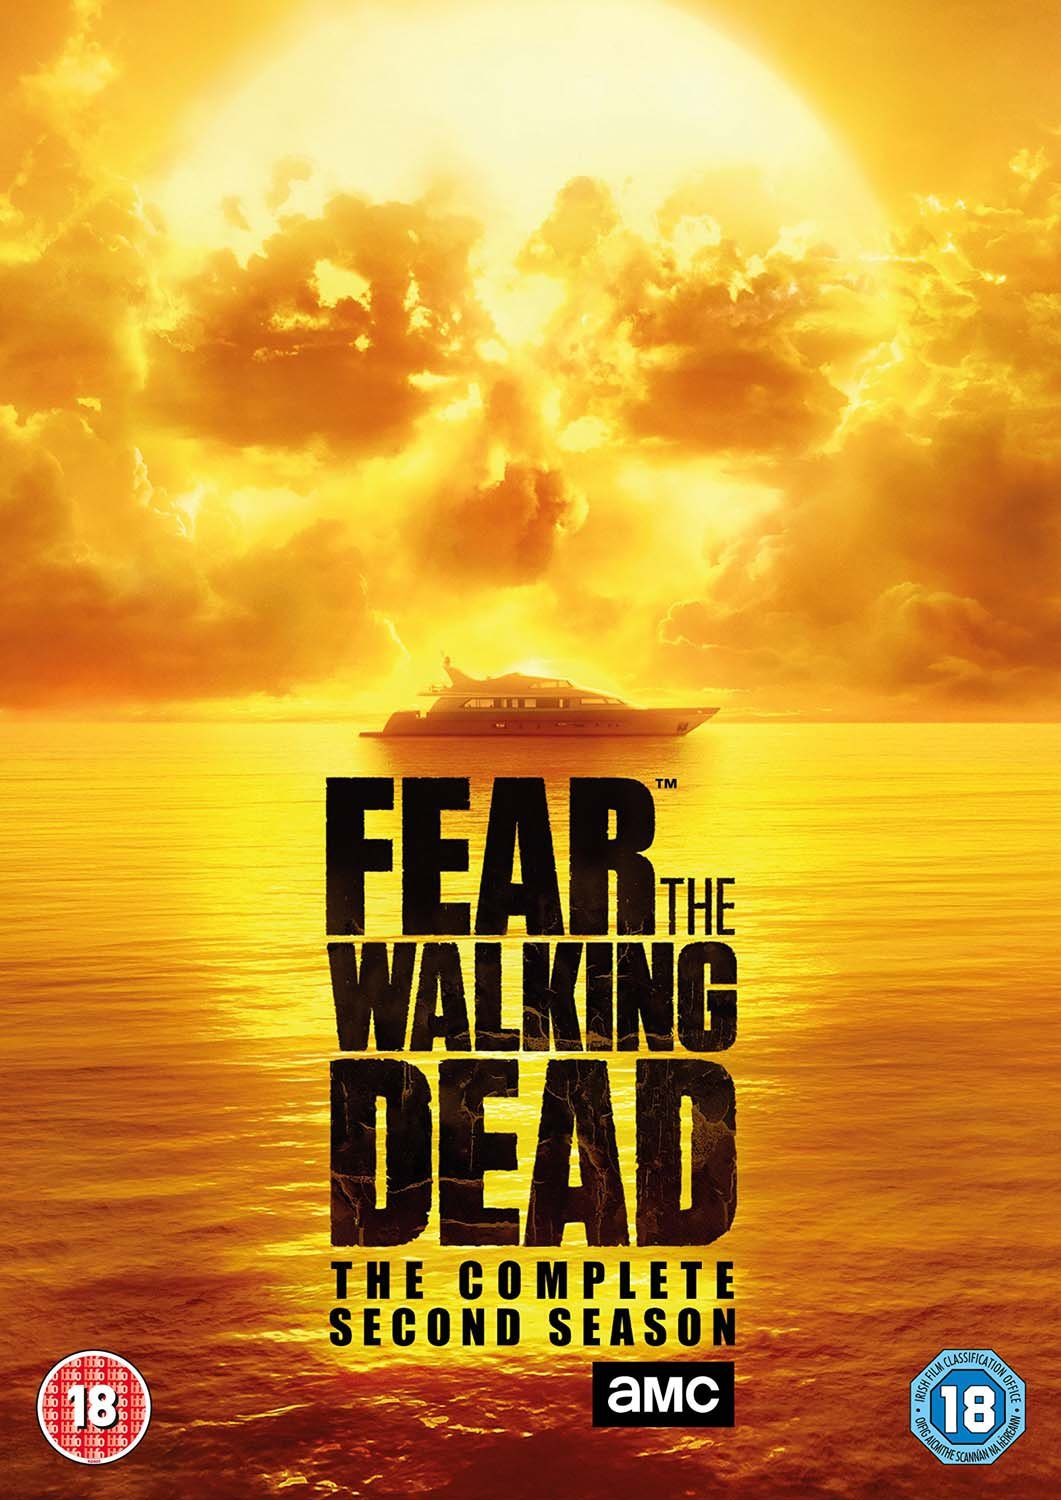 fear the walking dead season 3 full episodes free download in hindi